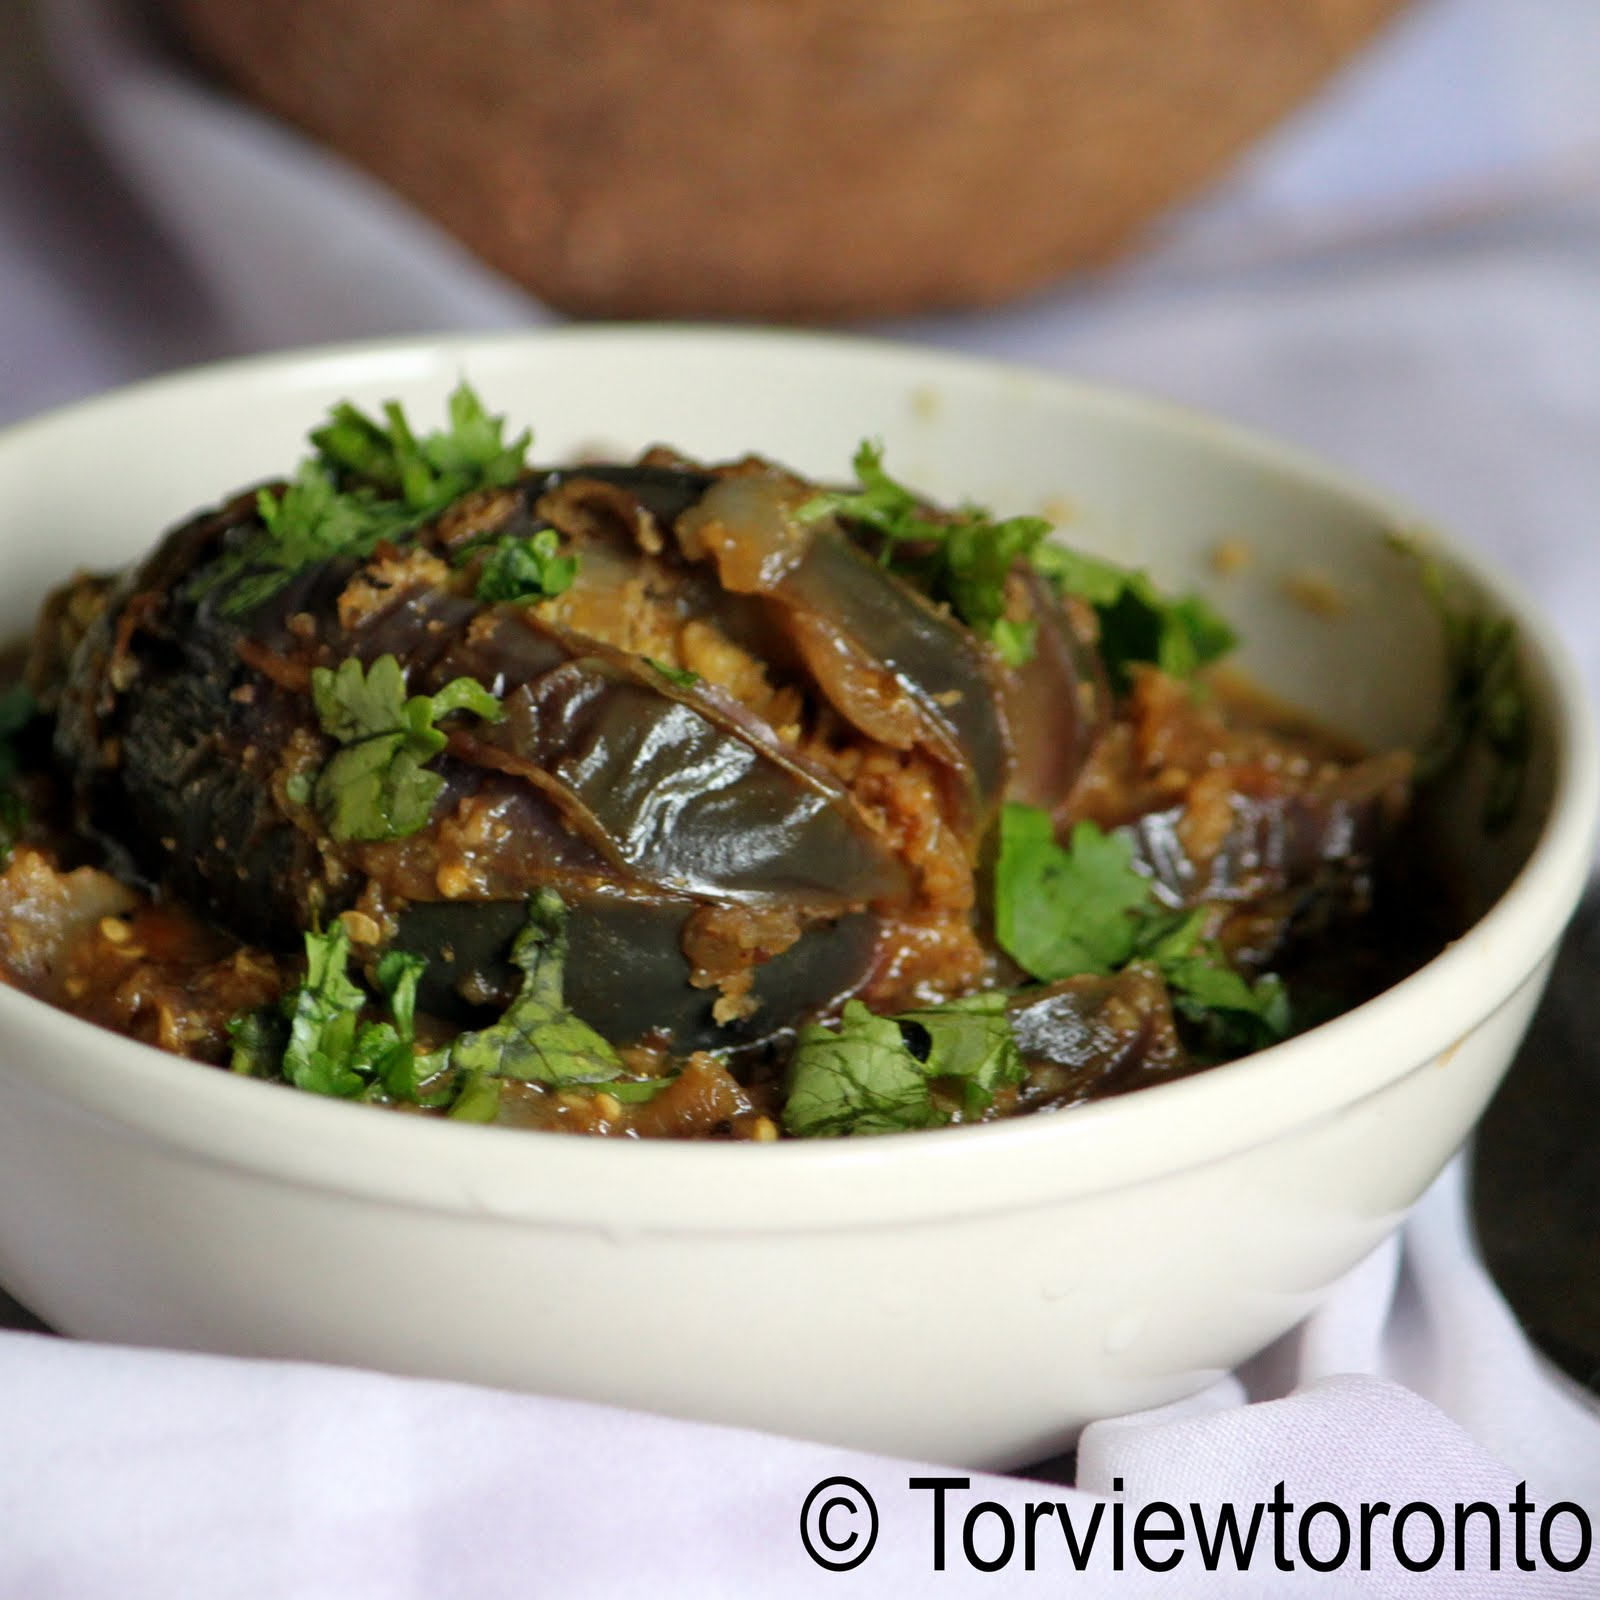 Eggplant curry stuffed with coconut